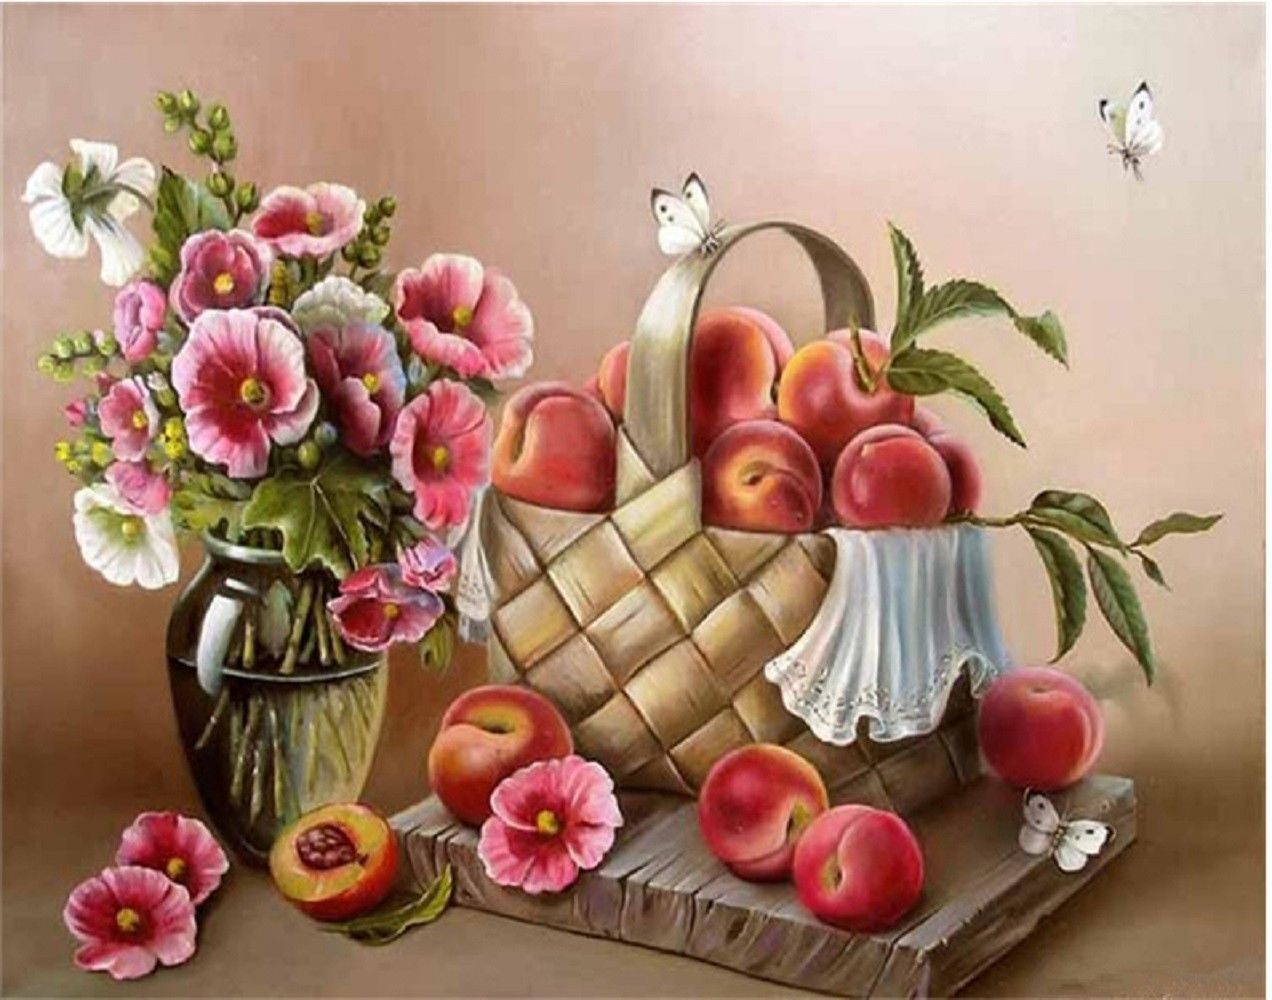 "Flower Fruit 16X20"" Paint By Number Kit DIY Acrylic Painting on Canvas Unframed"